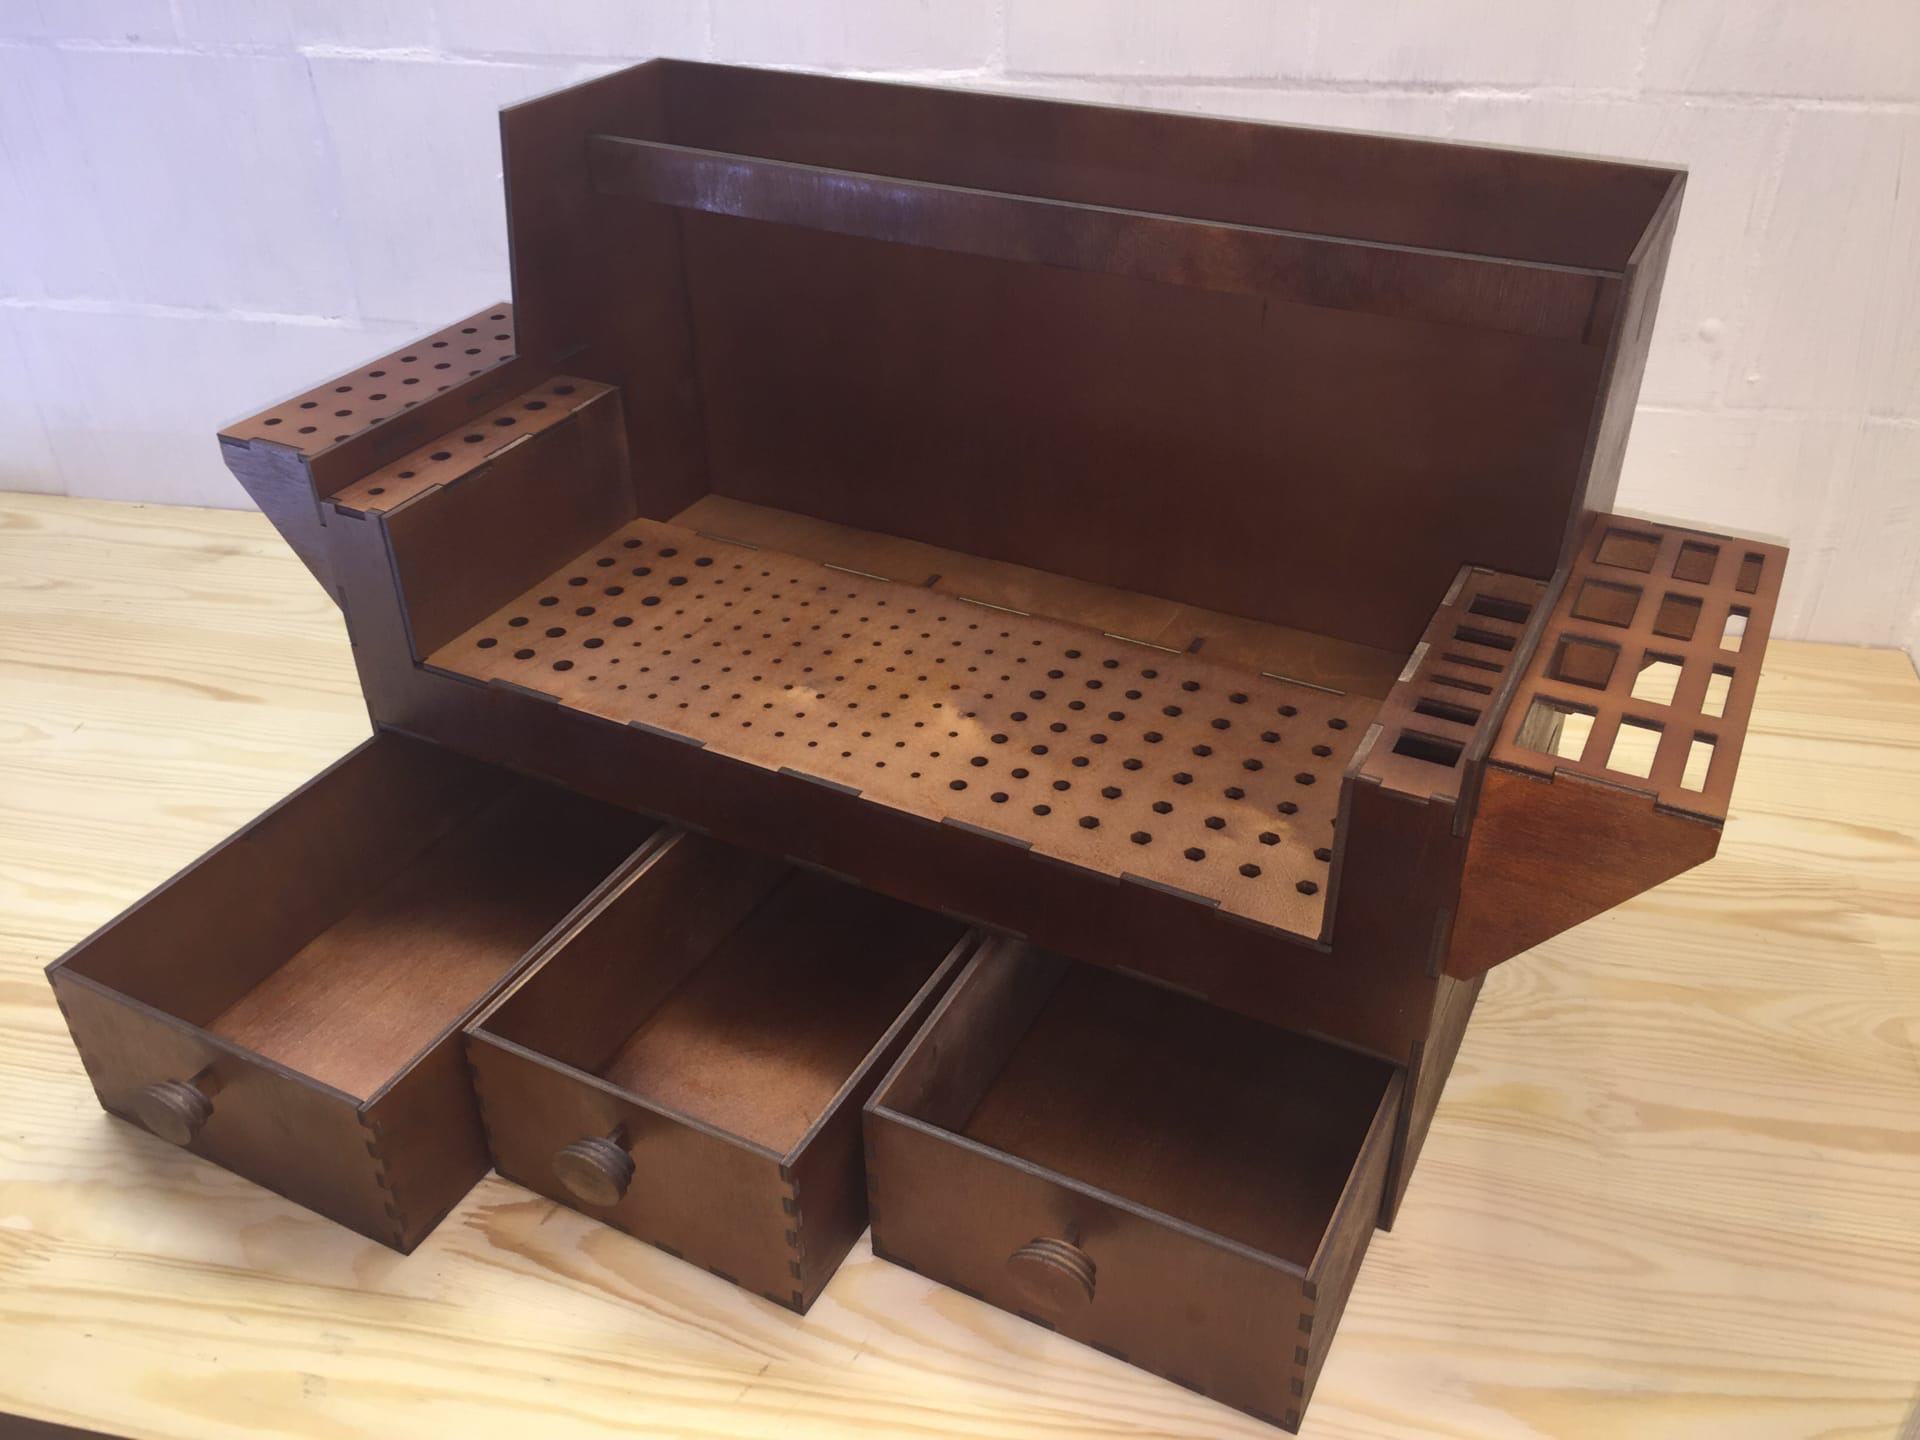 Laser Cut Bench Top Tool Organizer Workshop Tool Holder 4mm Free Vector